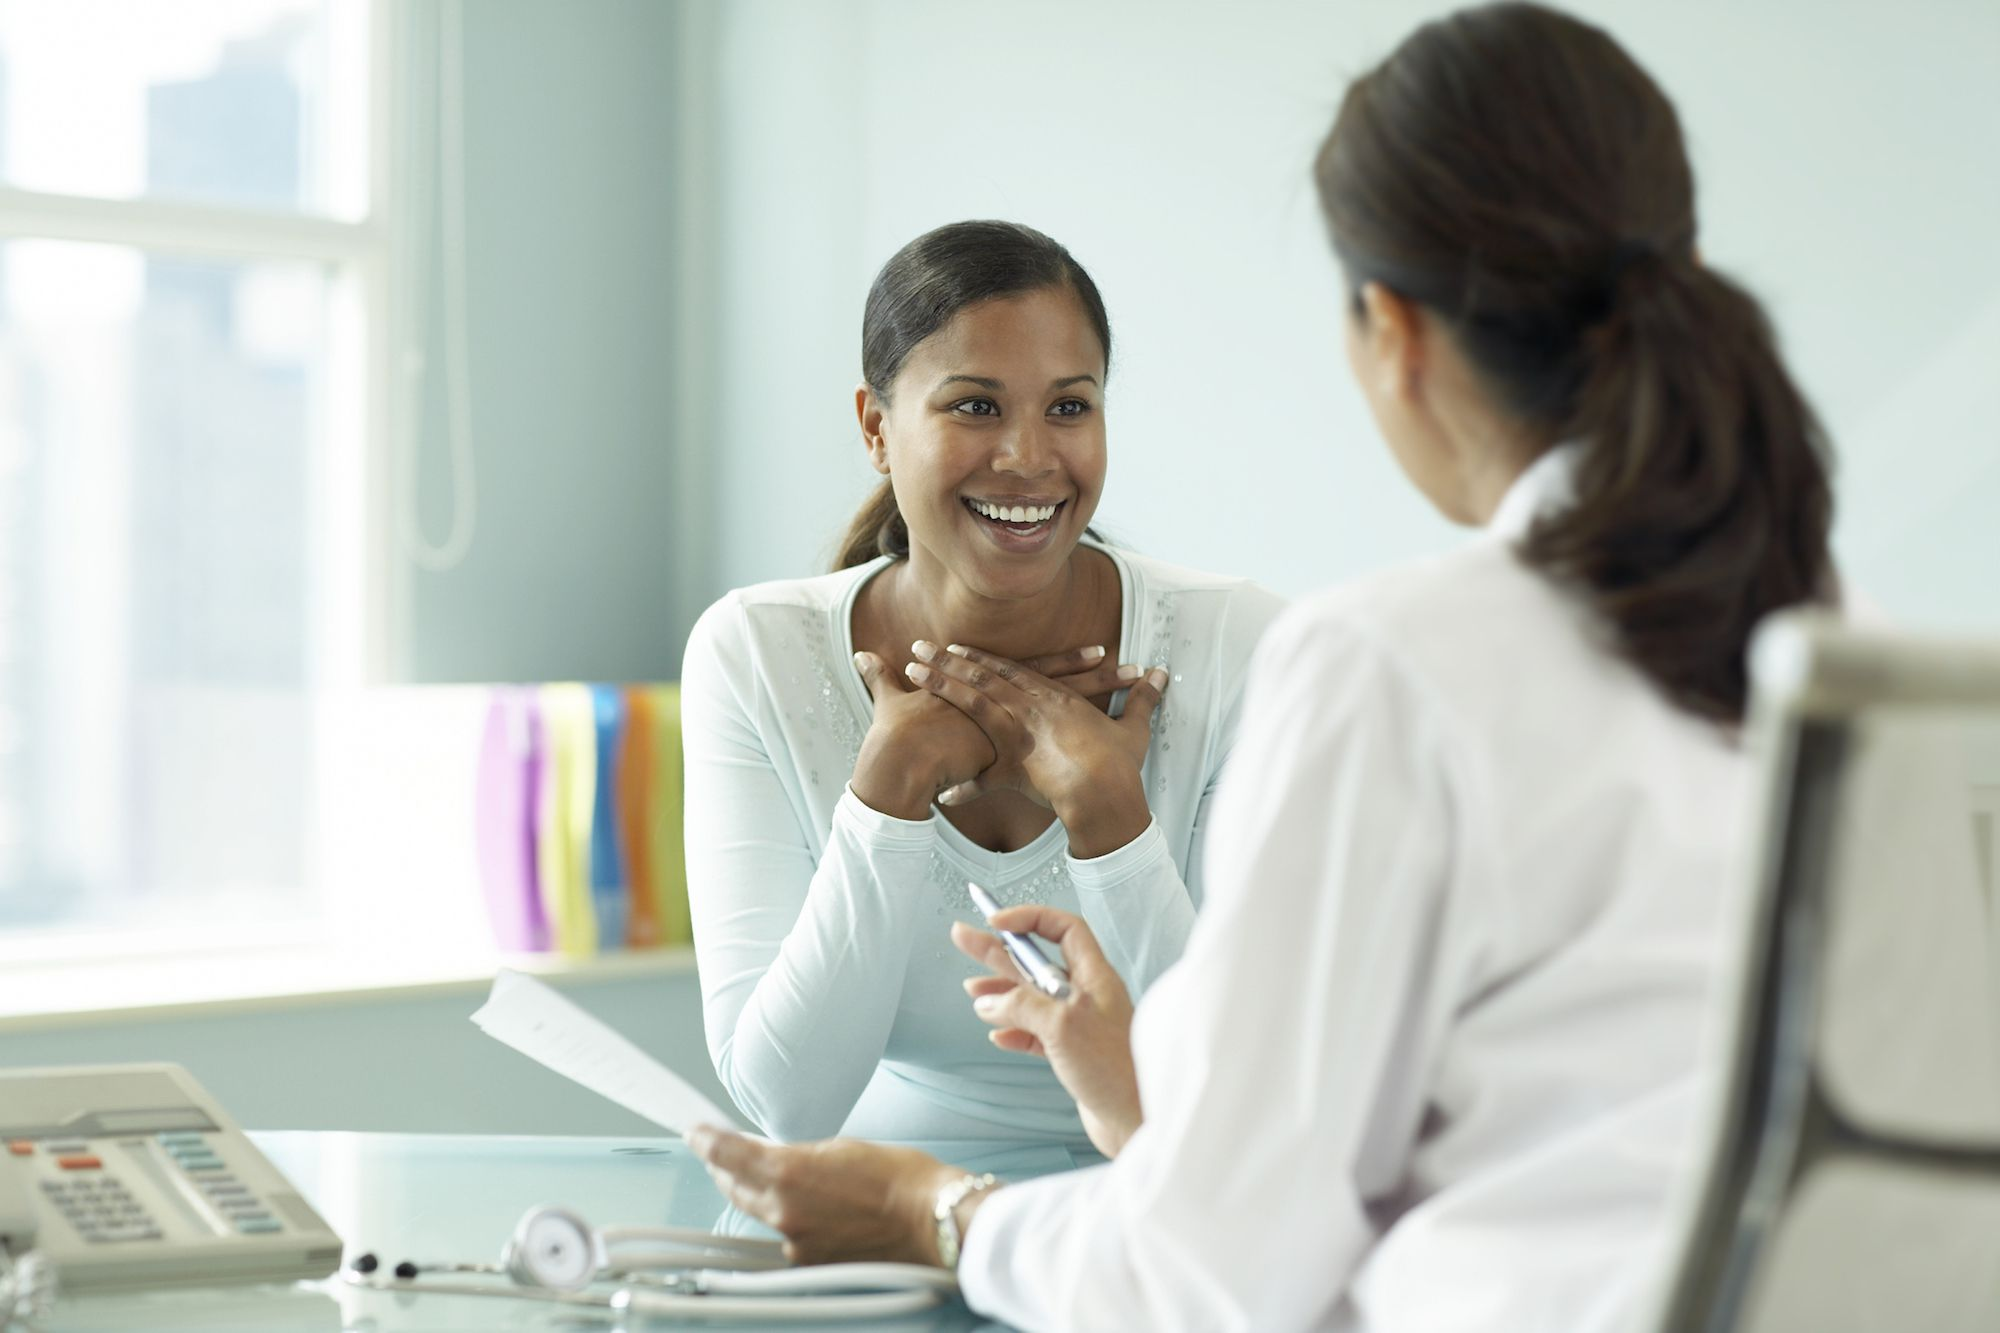 A patient talking to her doctor while smiling